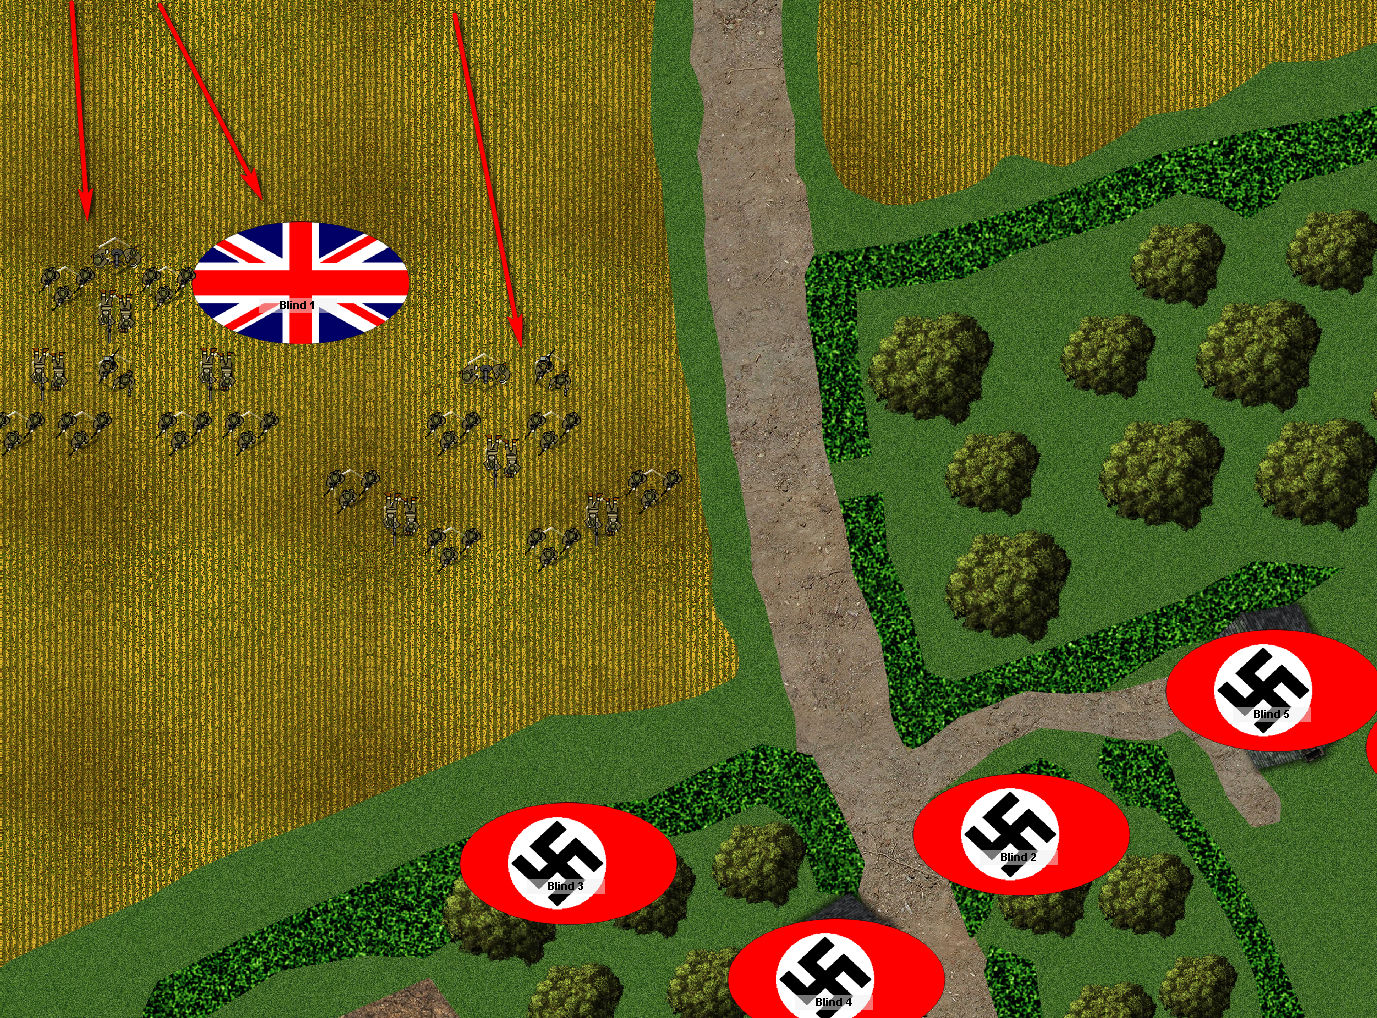 British troops get on the table